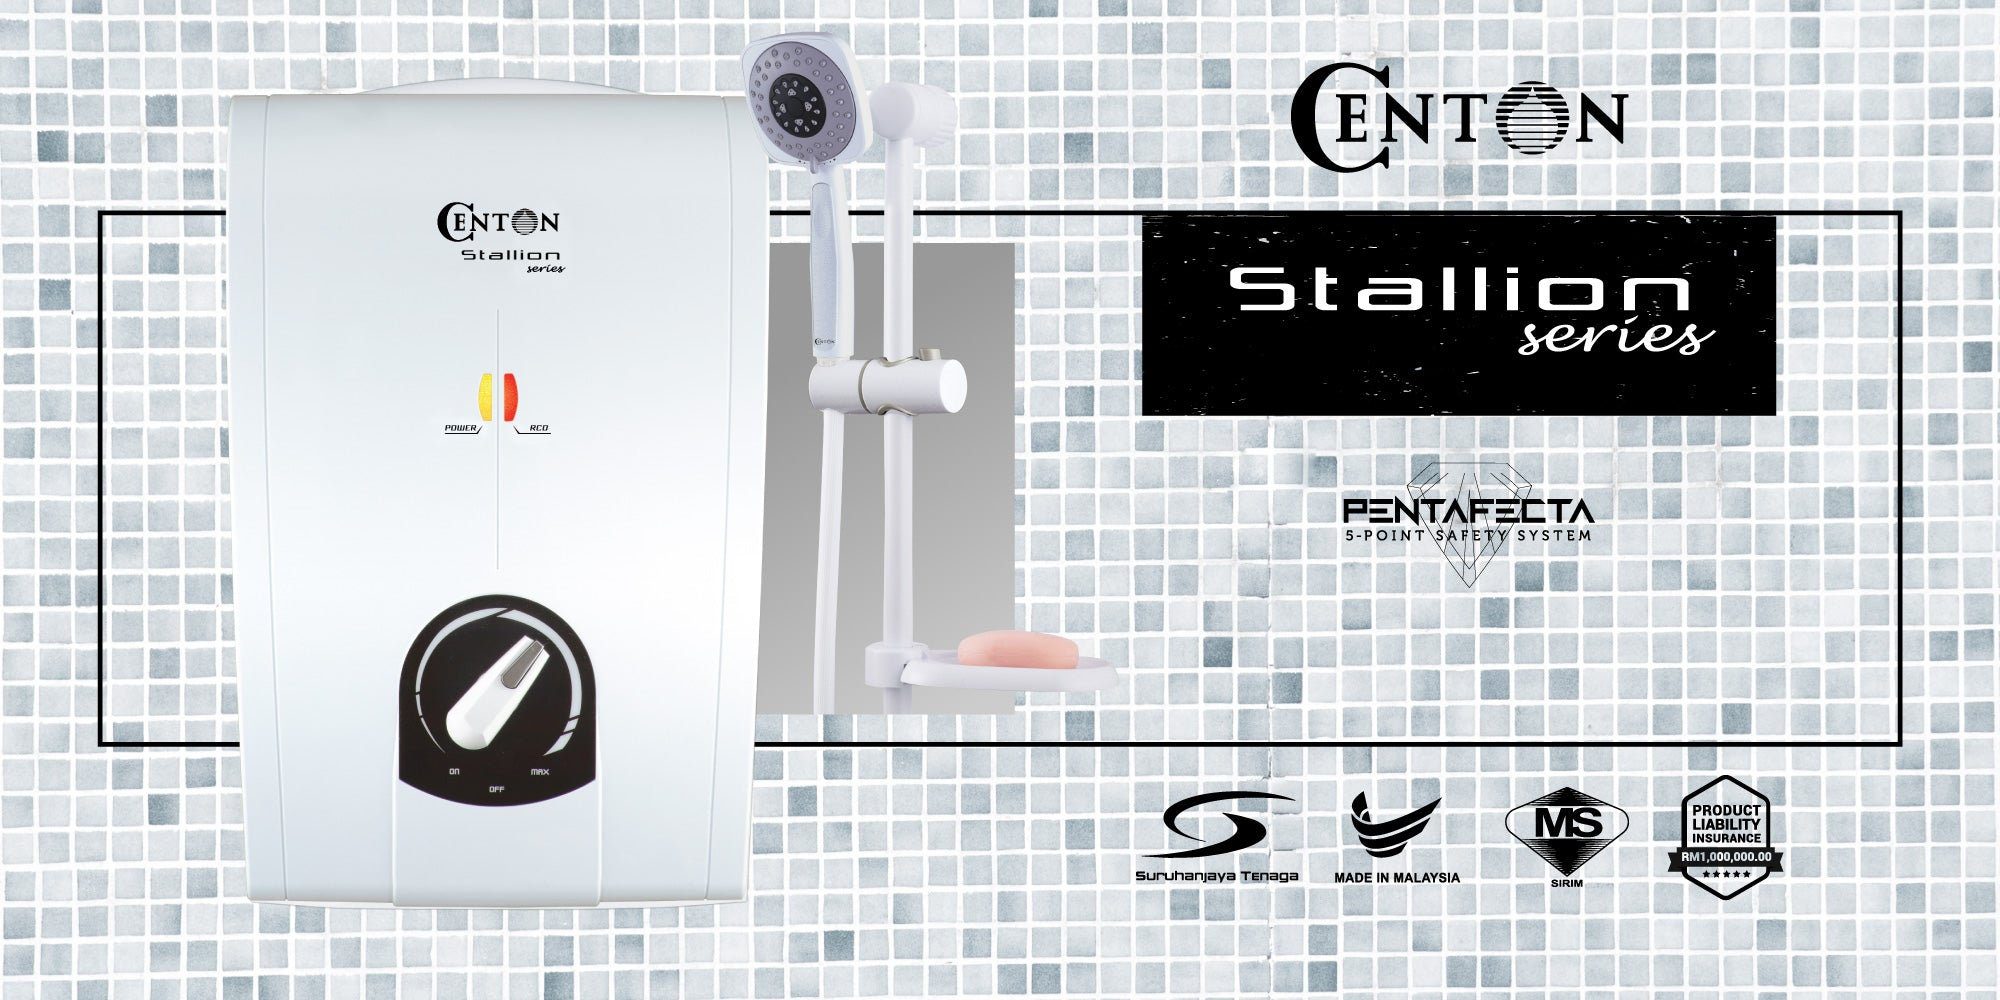 CENTON Stallion Instant Water Heater